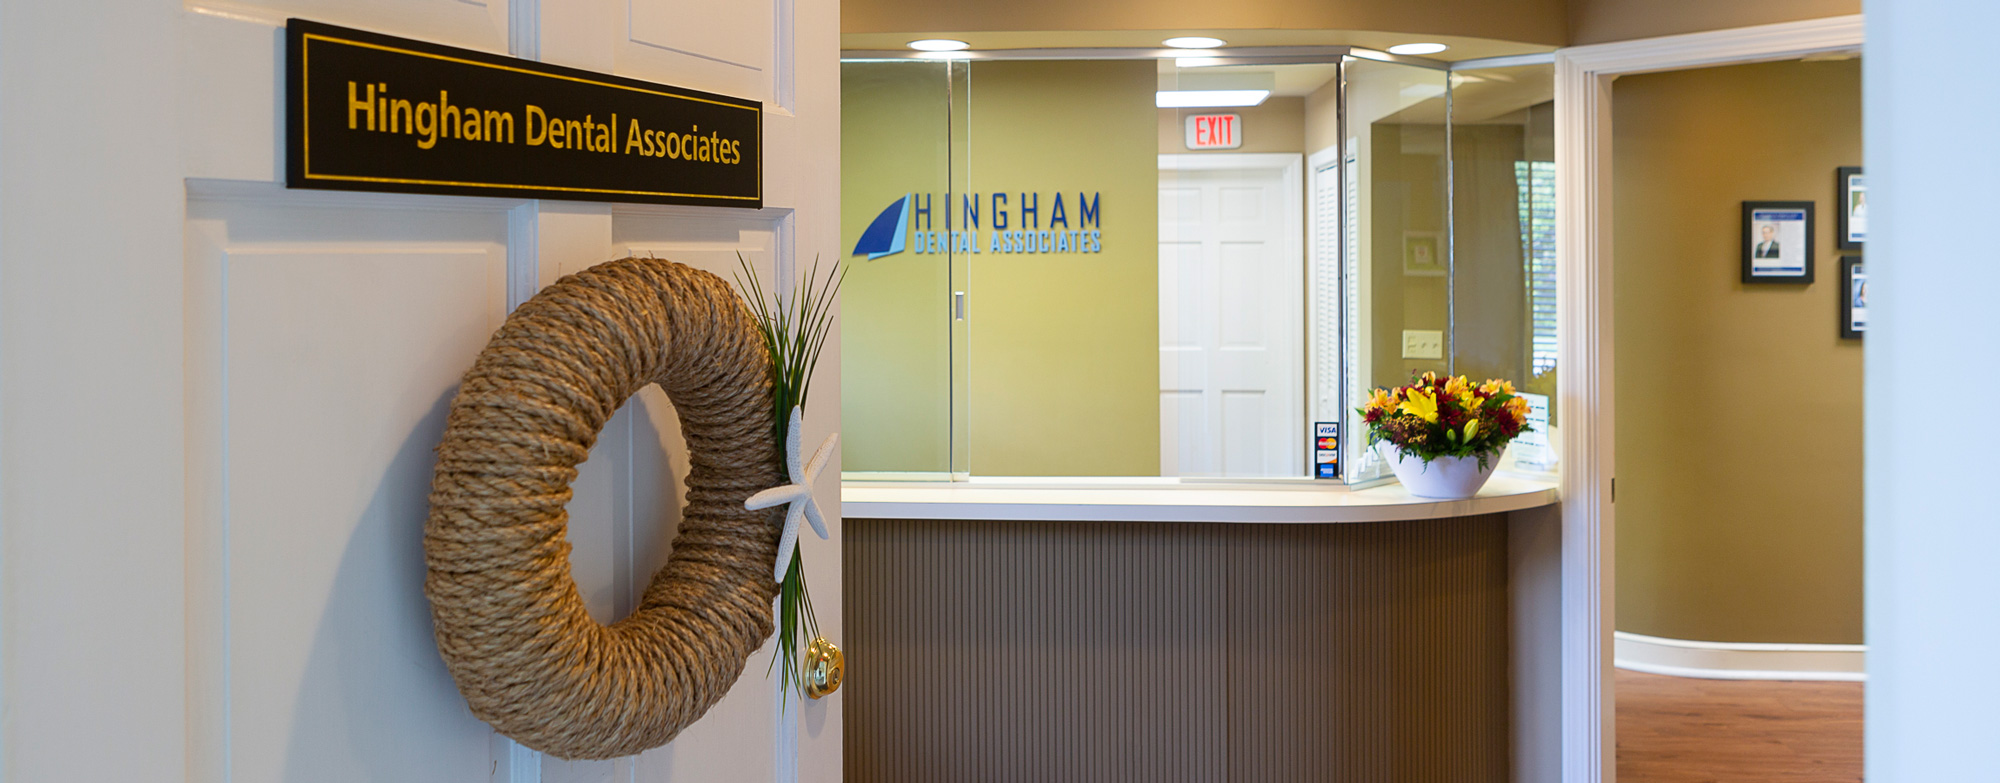 Your Visit to Hingham Dental Associates